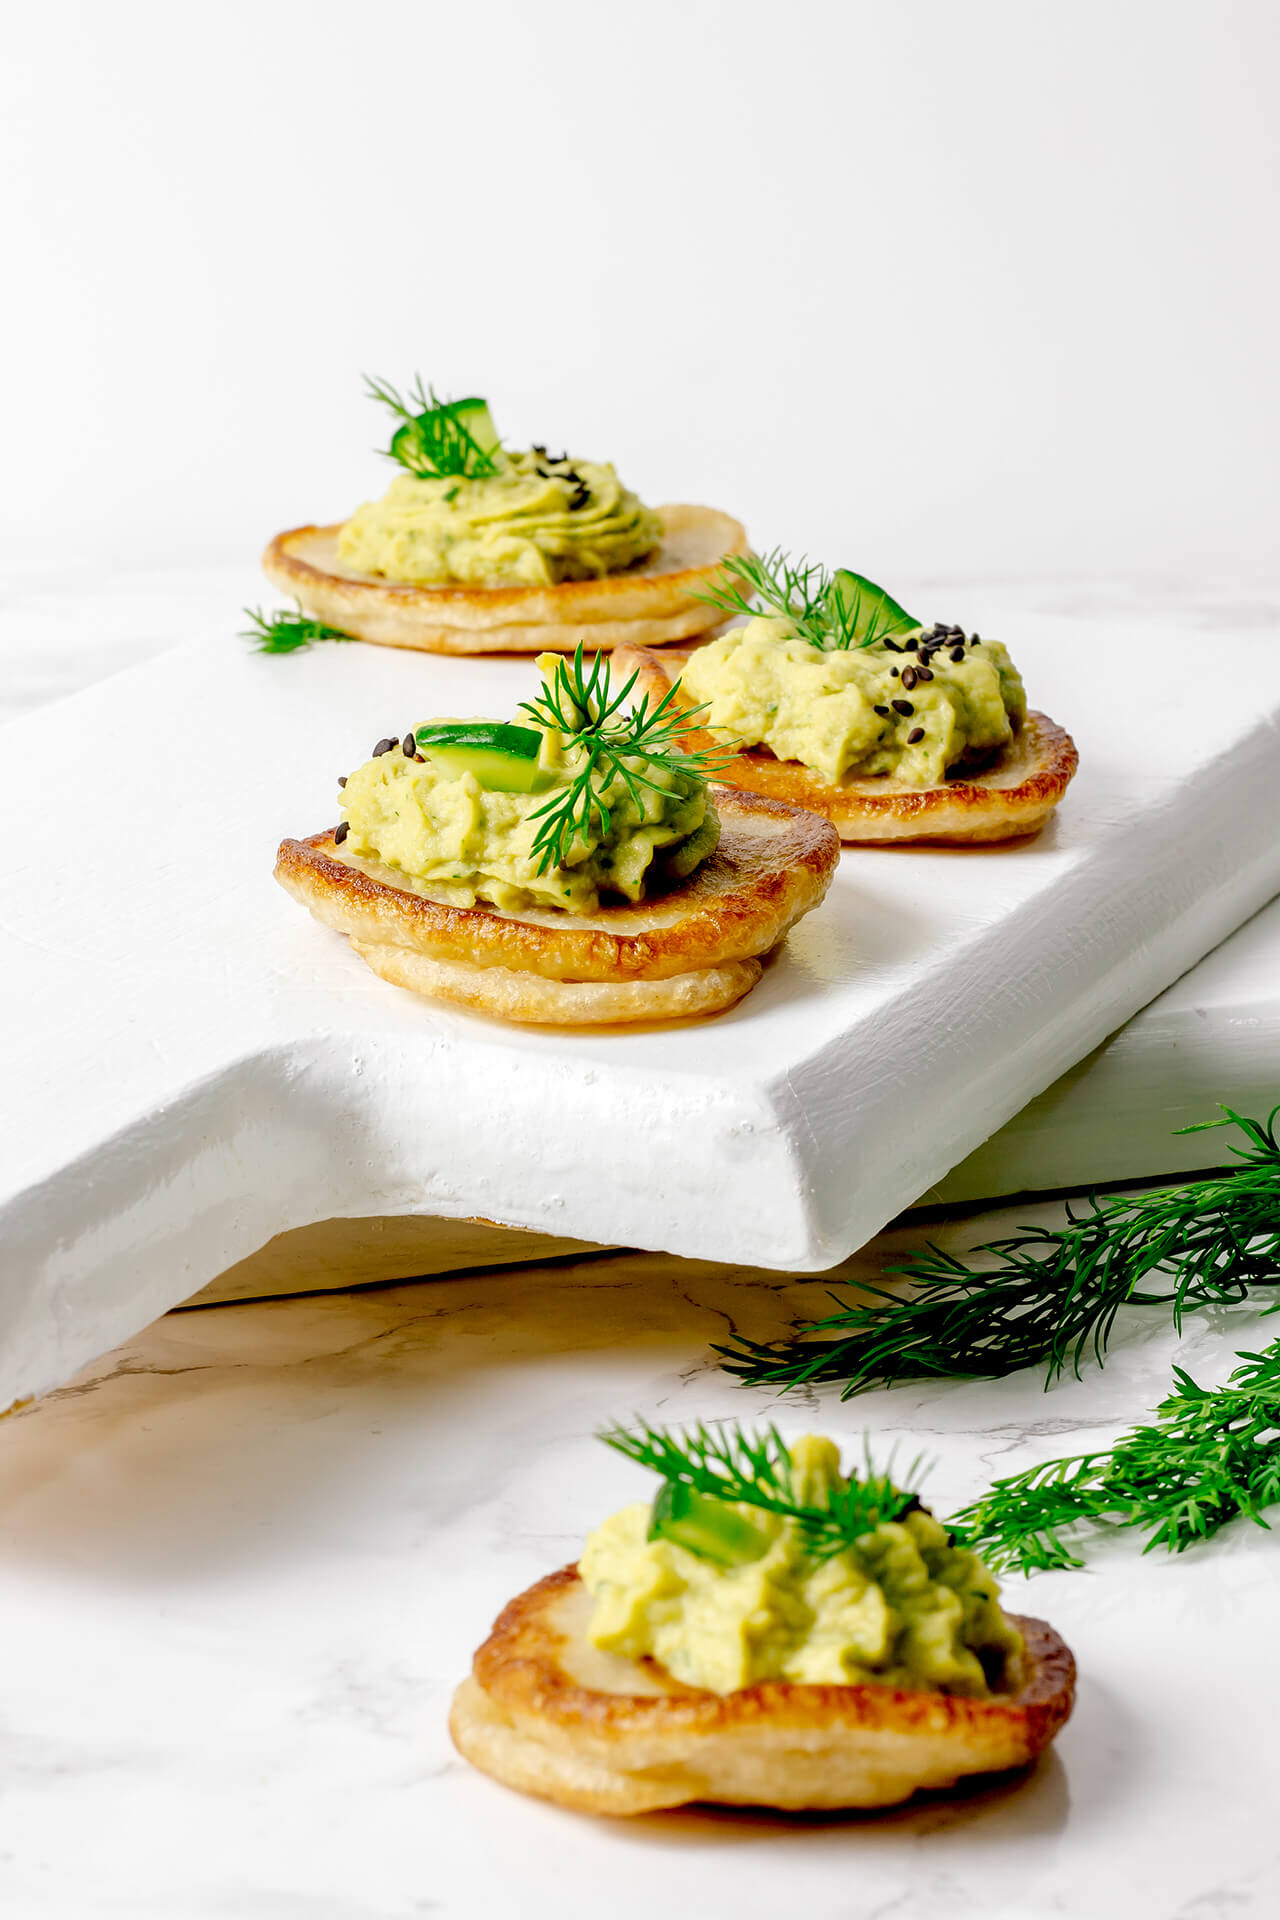 Vegan Blini with Avocado Hummus